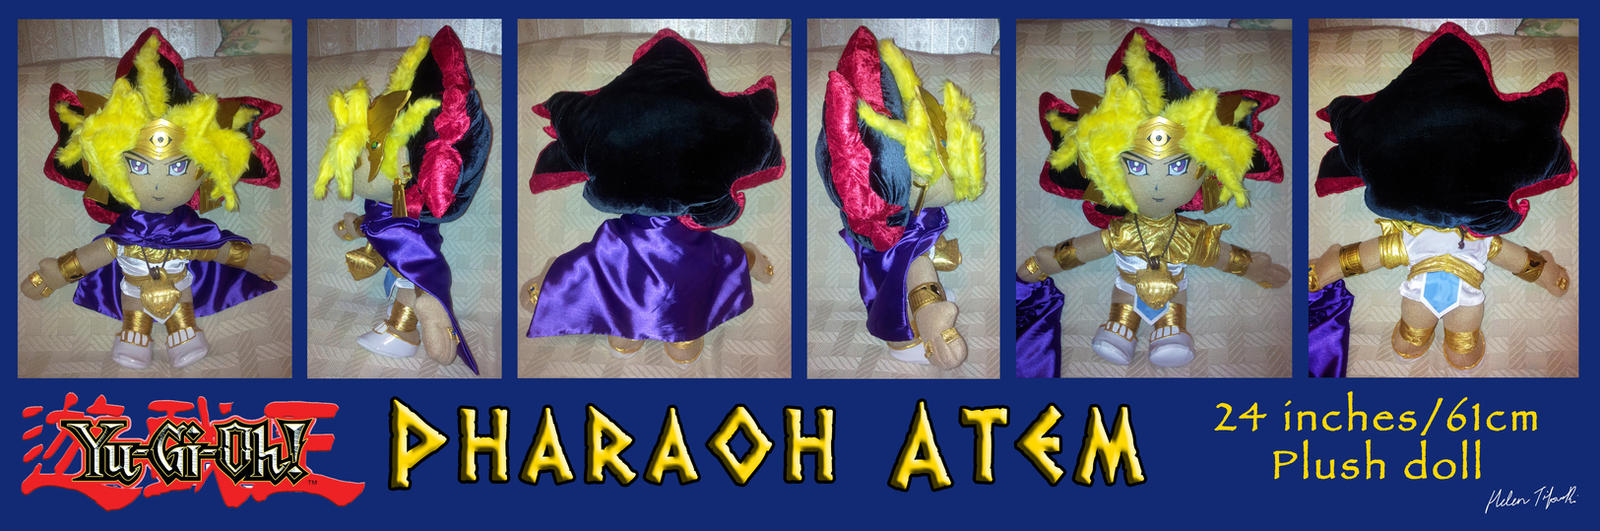 Yugioh Pharaoh Atem Plush doll (HAND-MADE) by Ubermidget